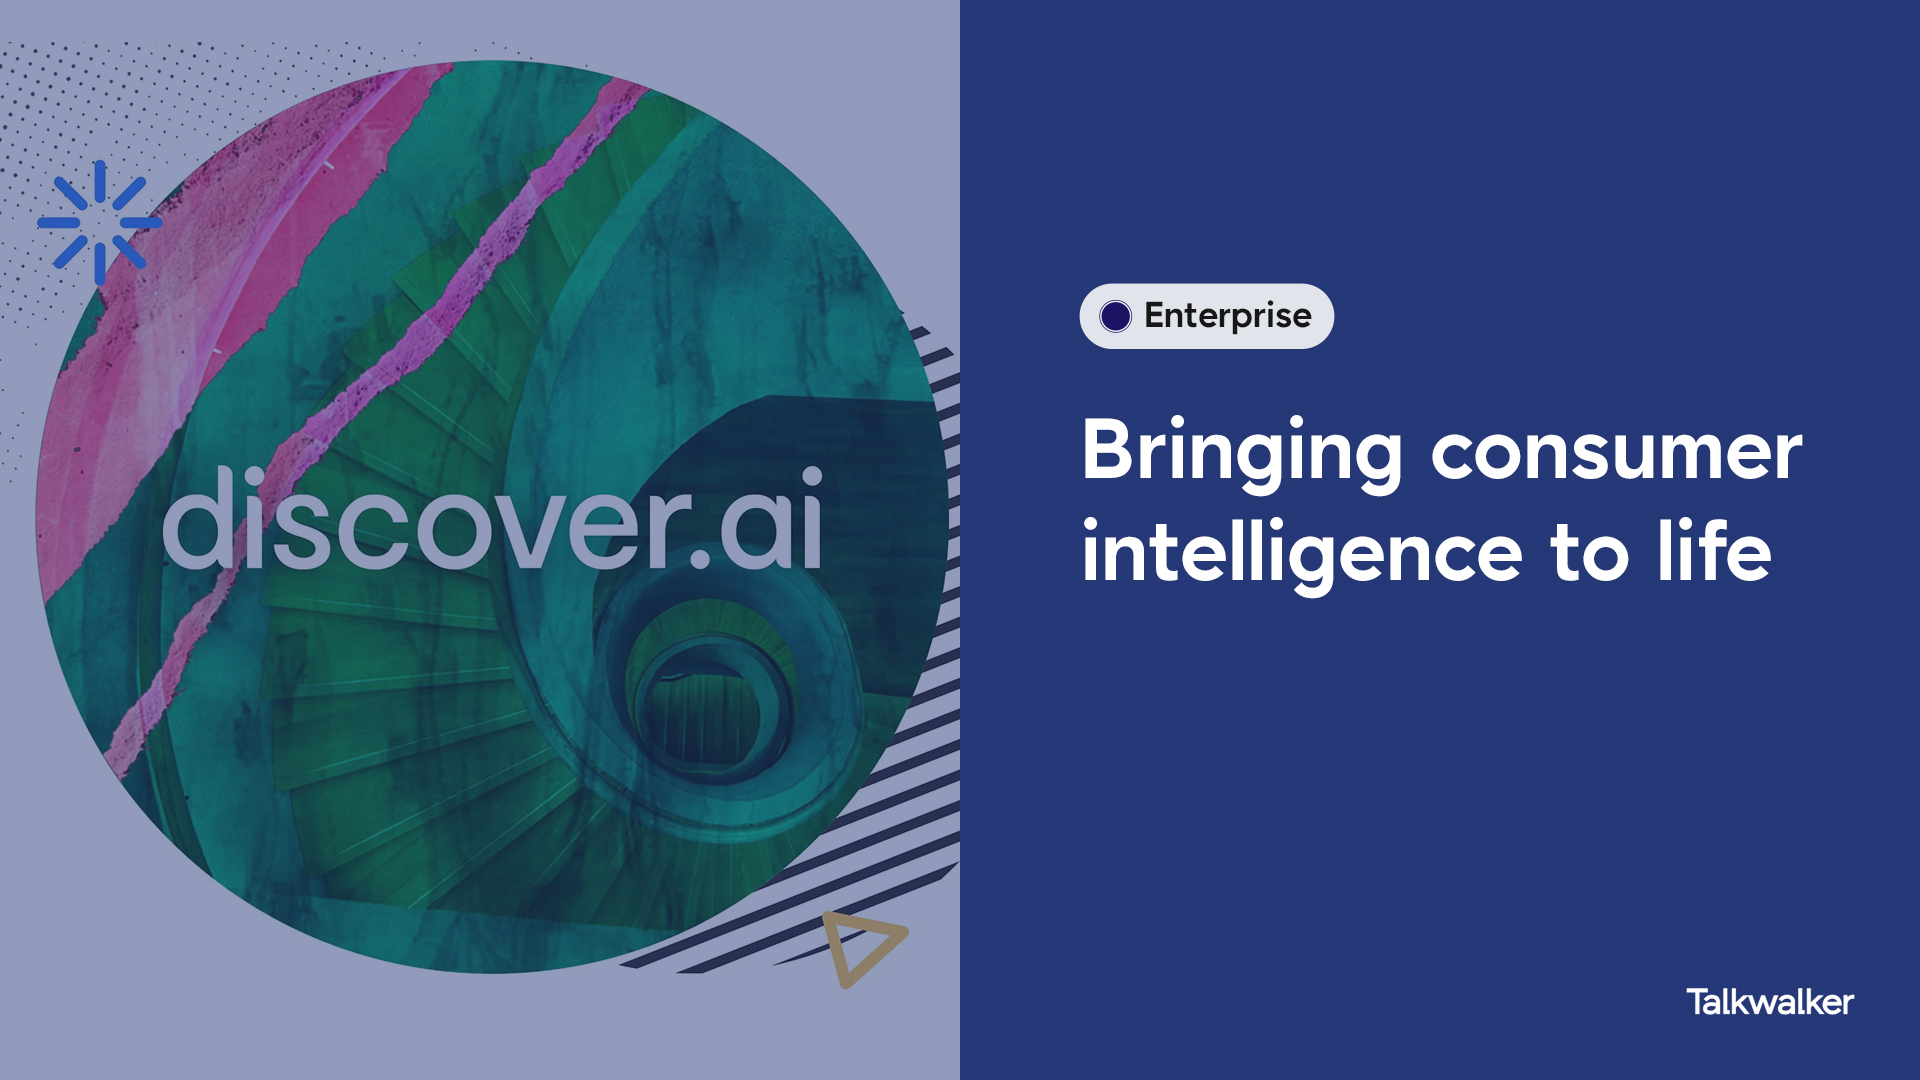 Discover.ai logo and title: Bringing consumer intelligence to life